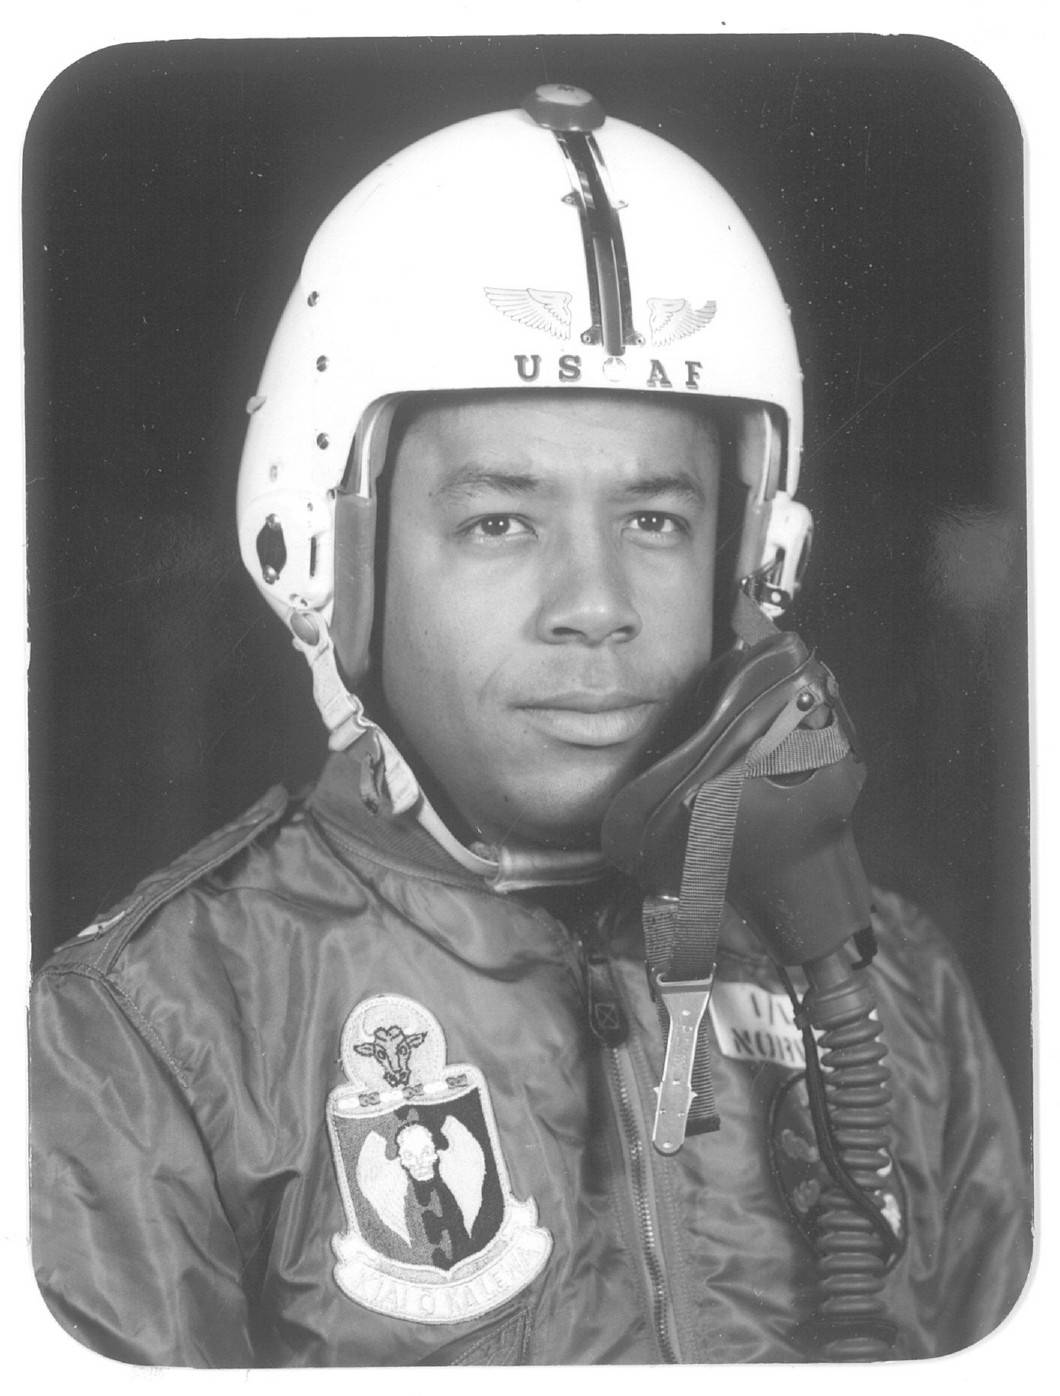 A standout pilot flying B-52s for the Air Force, William R. Norwood was hired in 1965 as the first African-American pilot at United Airlines, where he soared in an award-winning career.